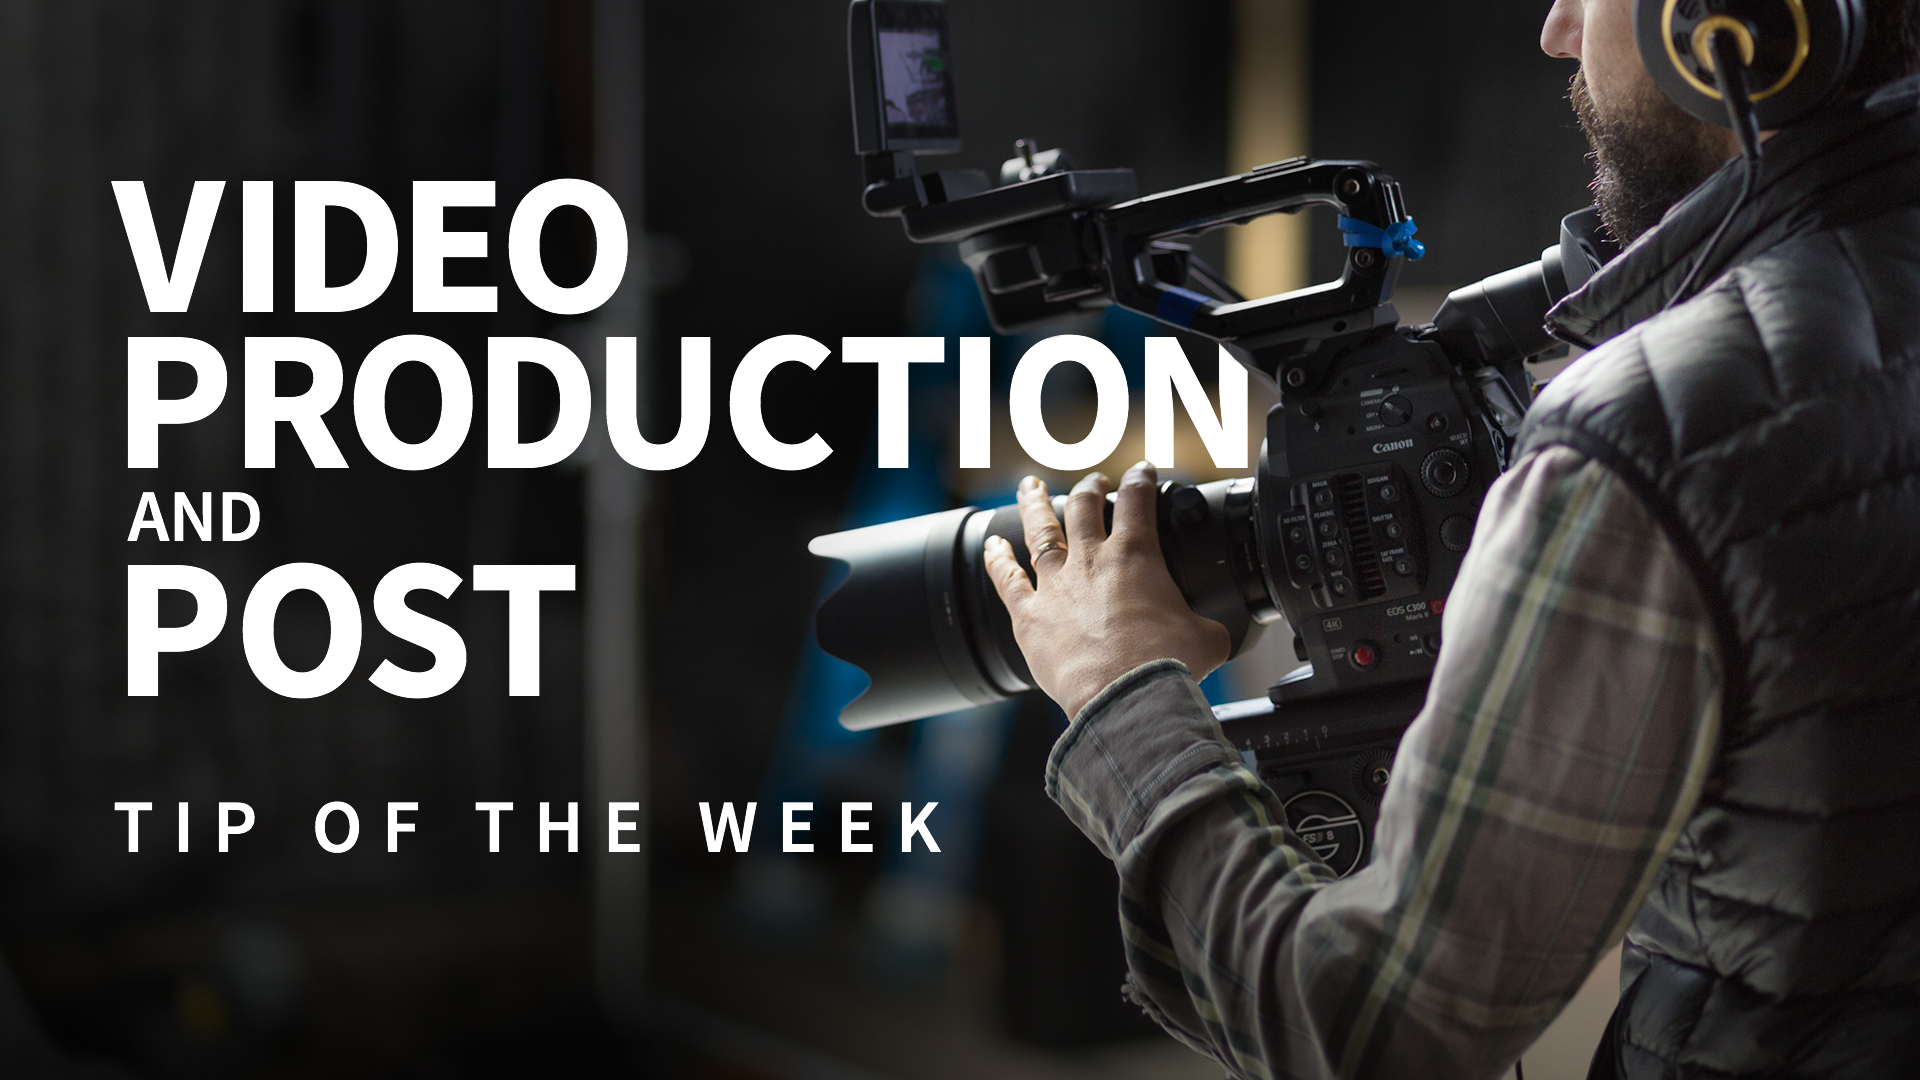 Using a generator: Video Production and Post Tip of the Week